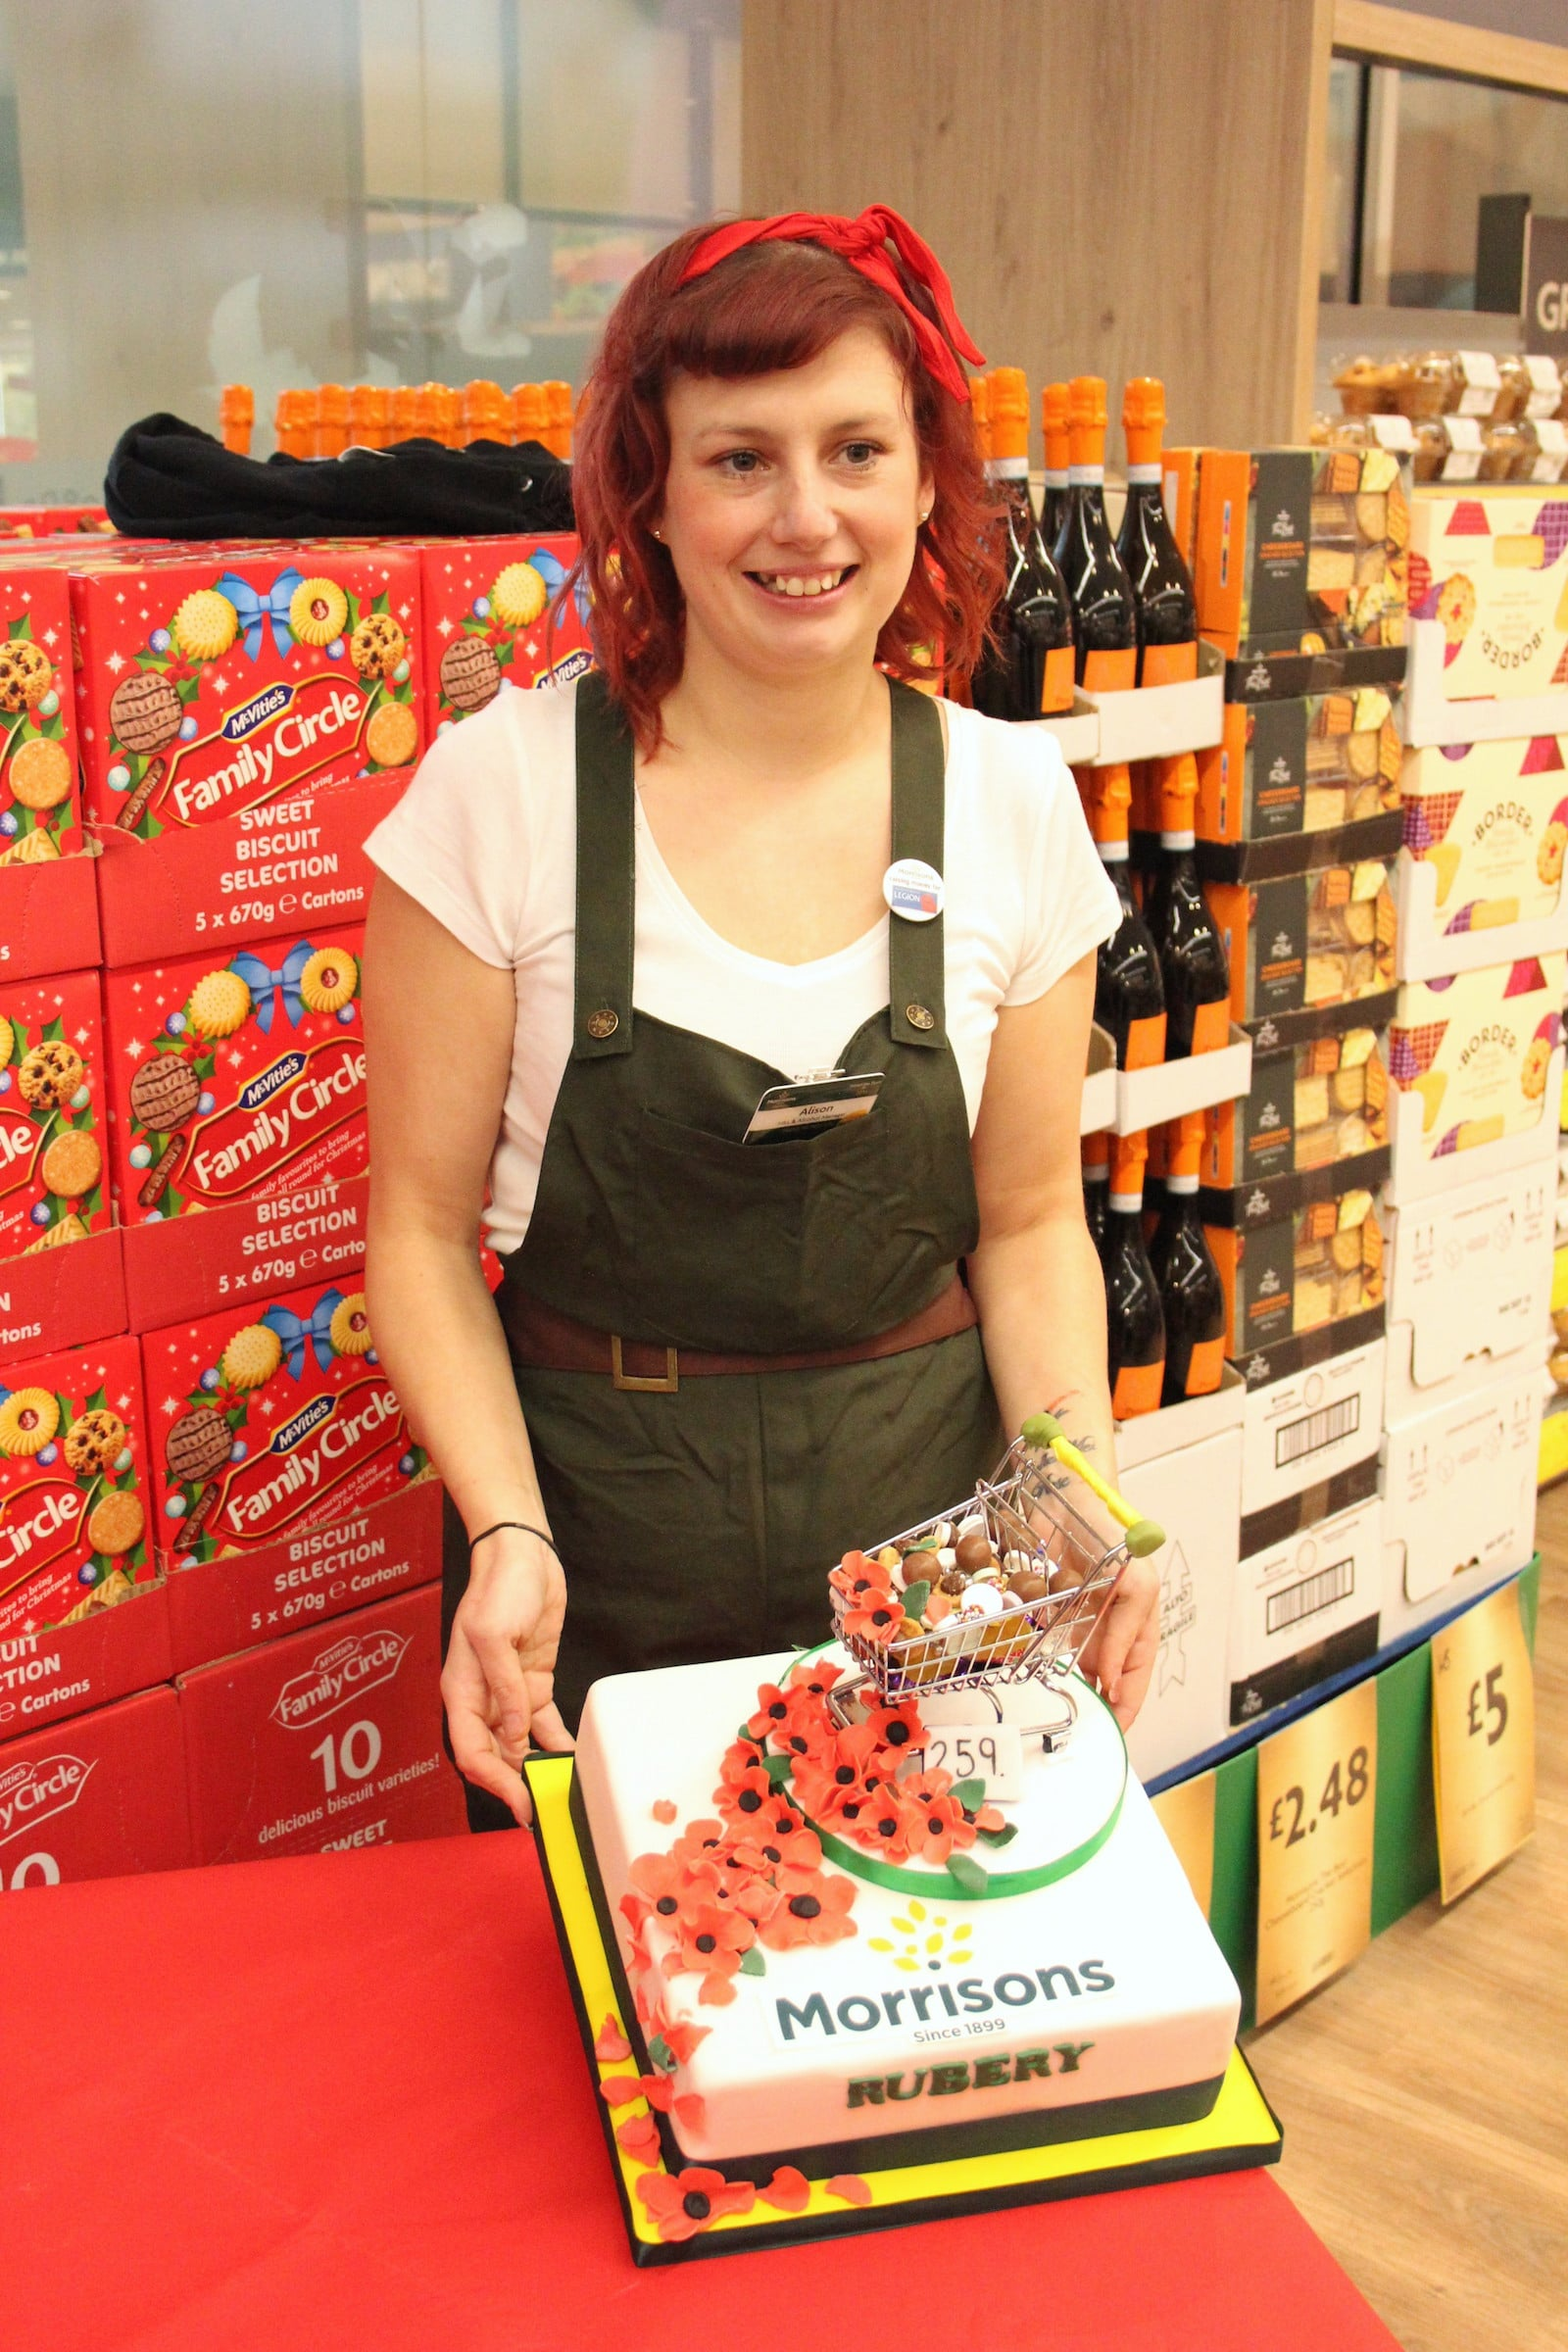 Rubery Supermarket Relaunches With 1940s Weekend B31 Voices